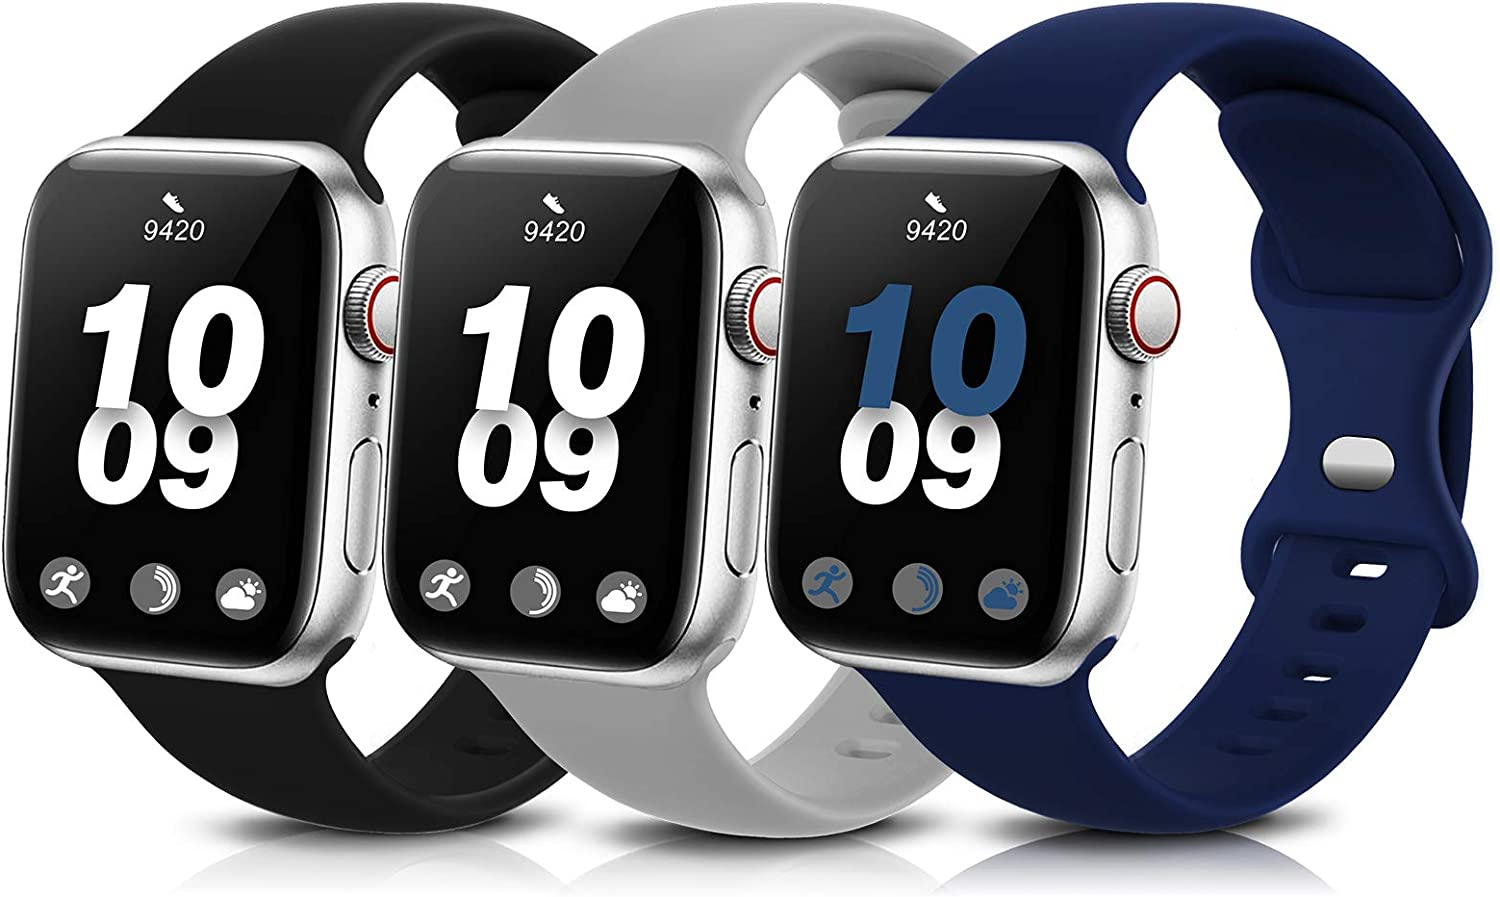 3 Pack Sport Band Compatible with Apple Watch Bands 38mm 40mm 42mm 44mm, Soft Silicone Replacement Compatible with iWatch Series 6 5 4 3 2 1 Women Men Black/Grey/Navy Blue 38mm/40mm S/M